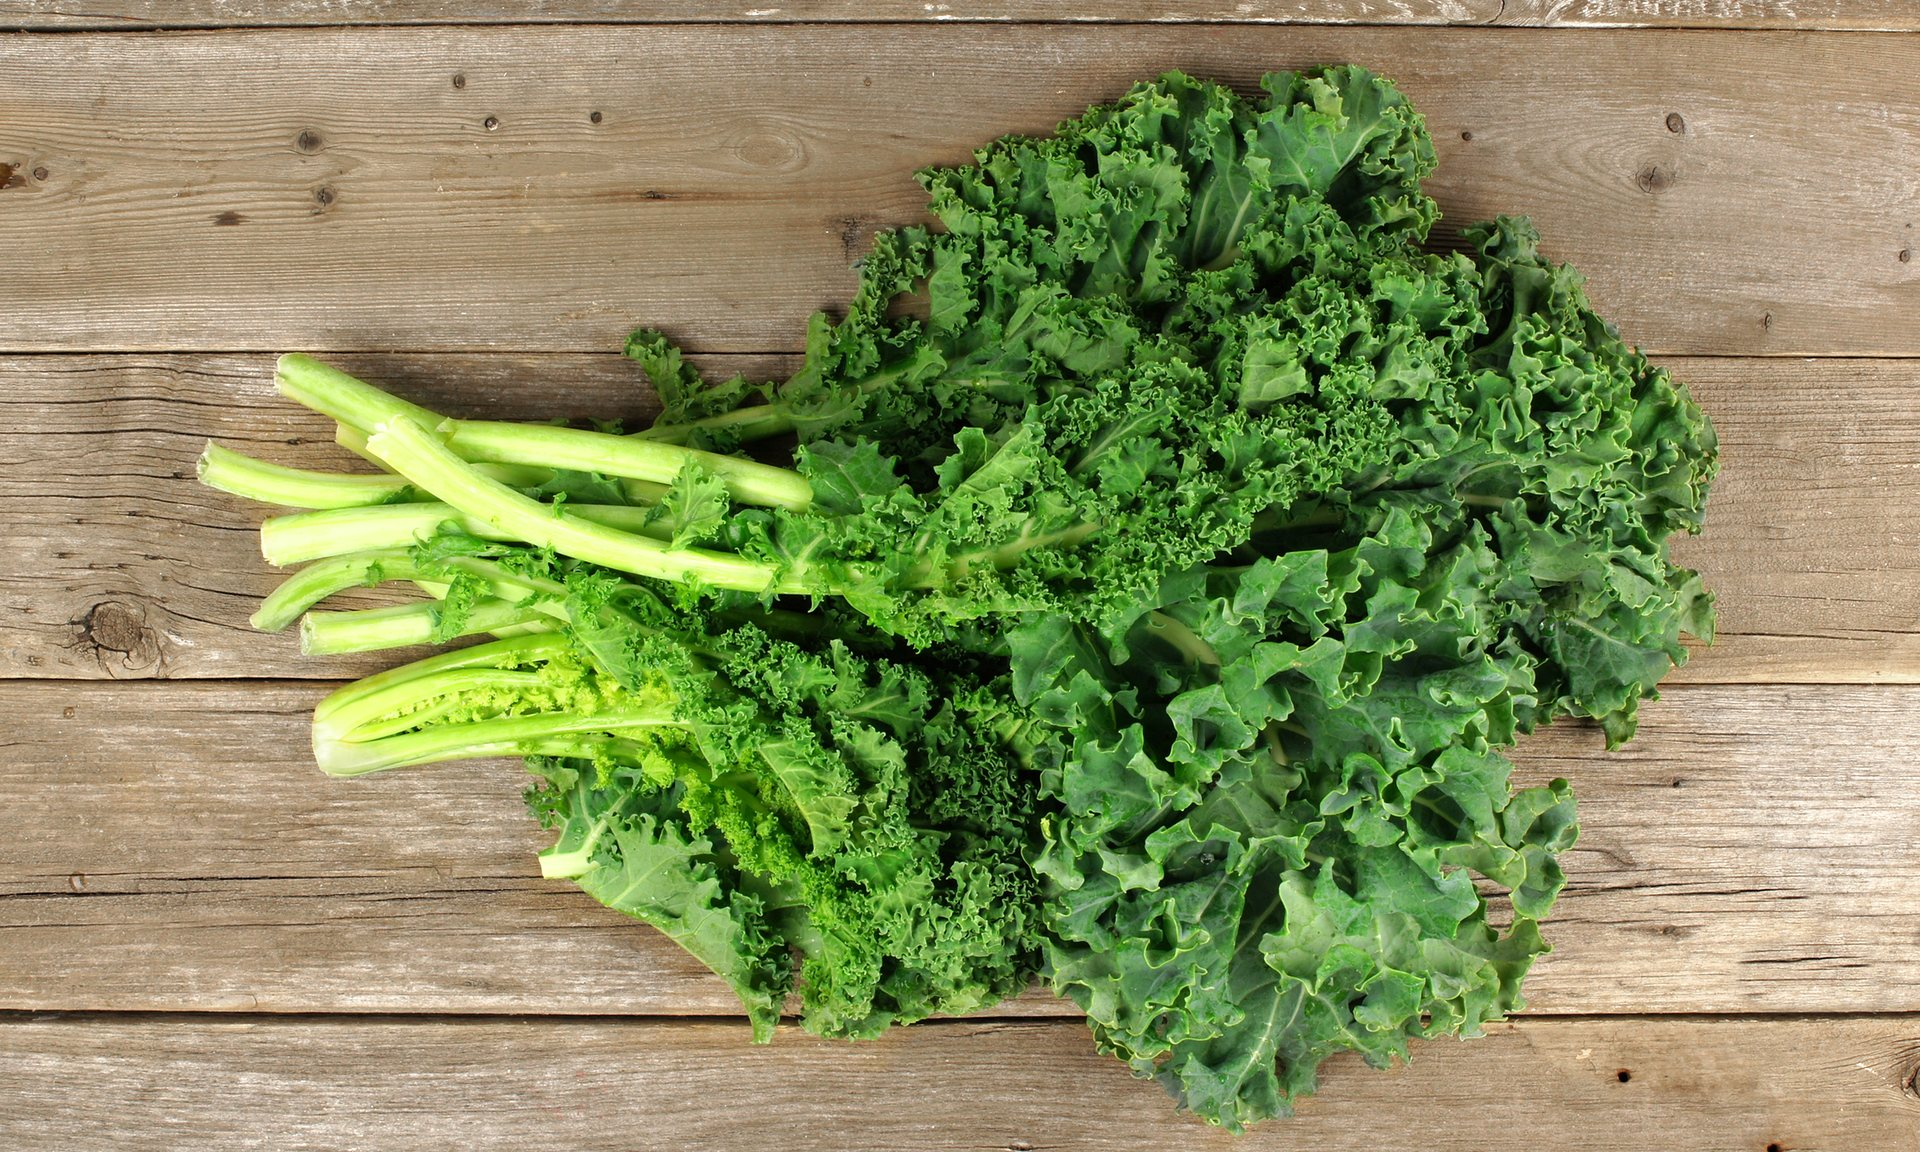 Kale. Photograph: jenifoto/Getty Images/iStockphoto